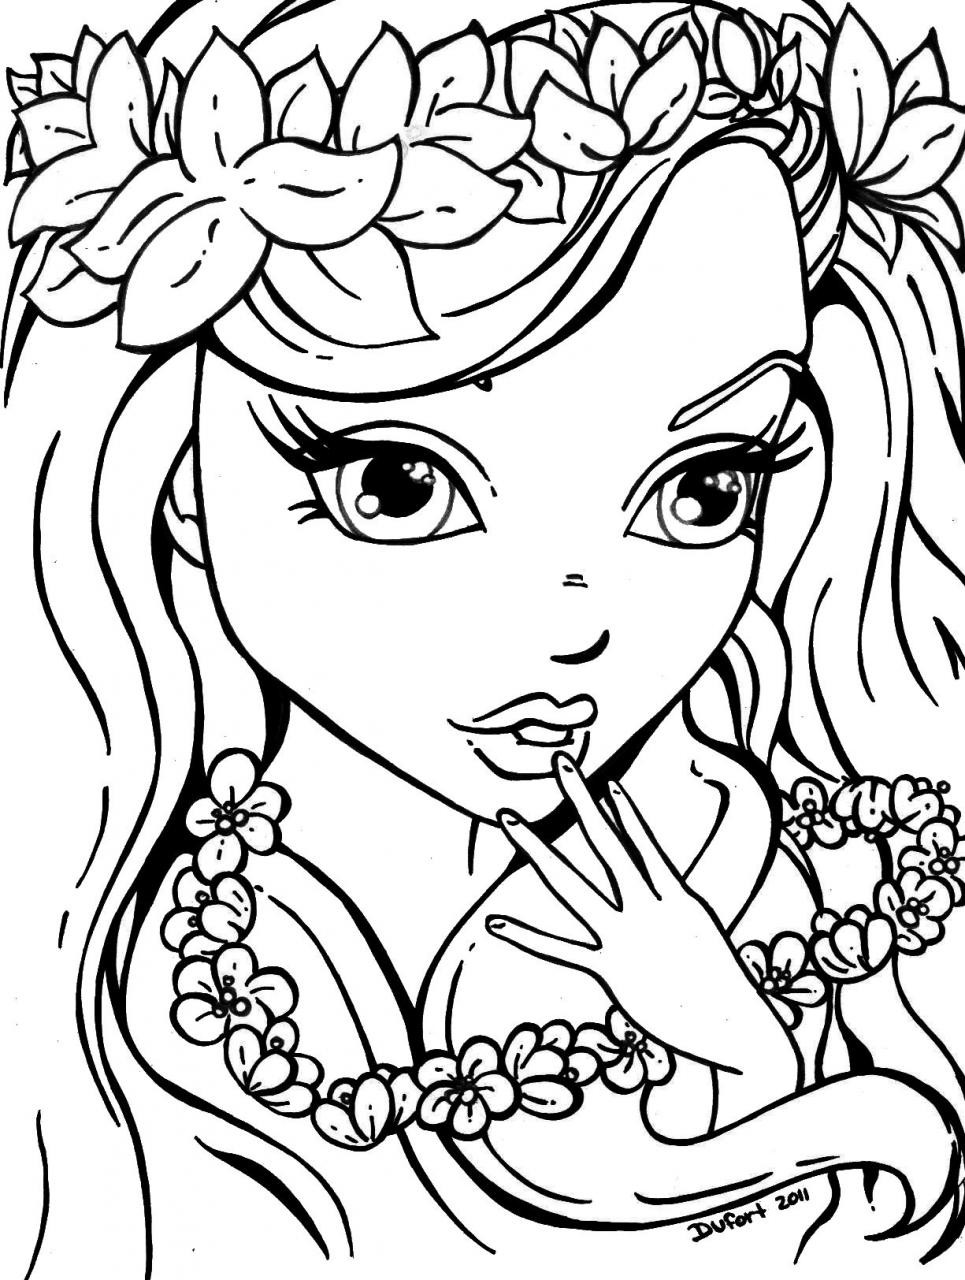 Coloring Sheets For Girls Free Printable  printable coloring pages for girls printable